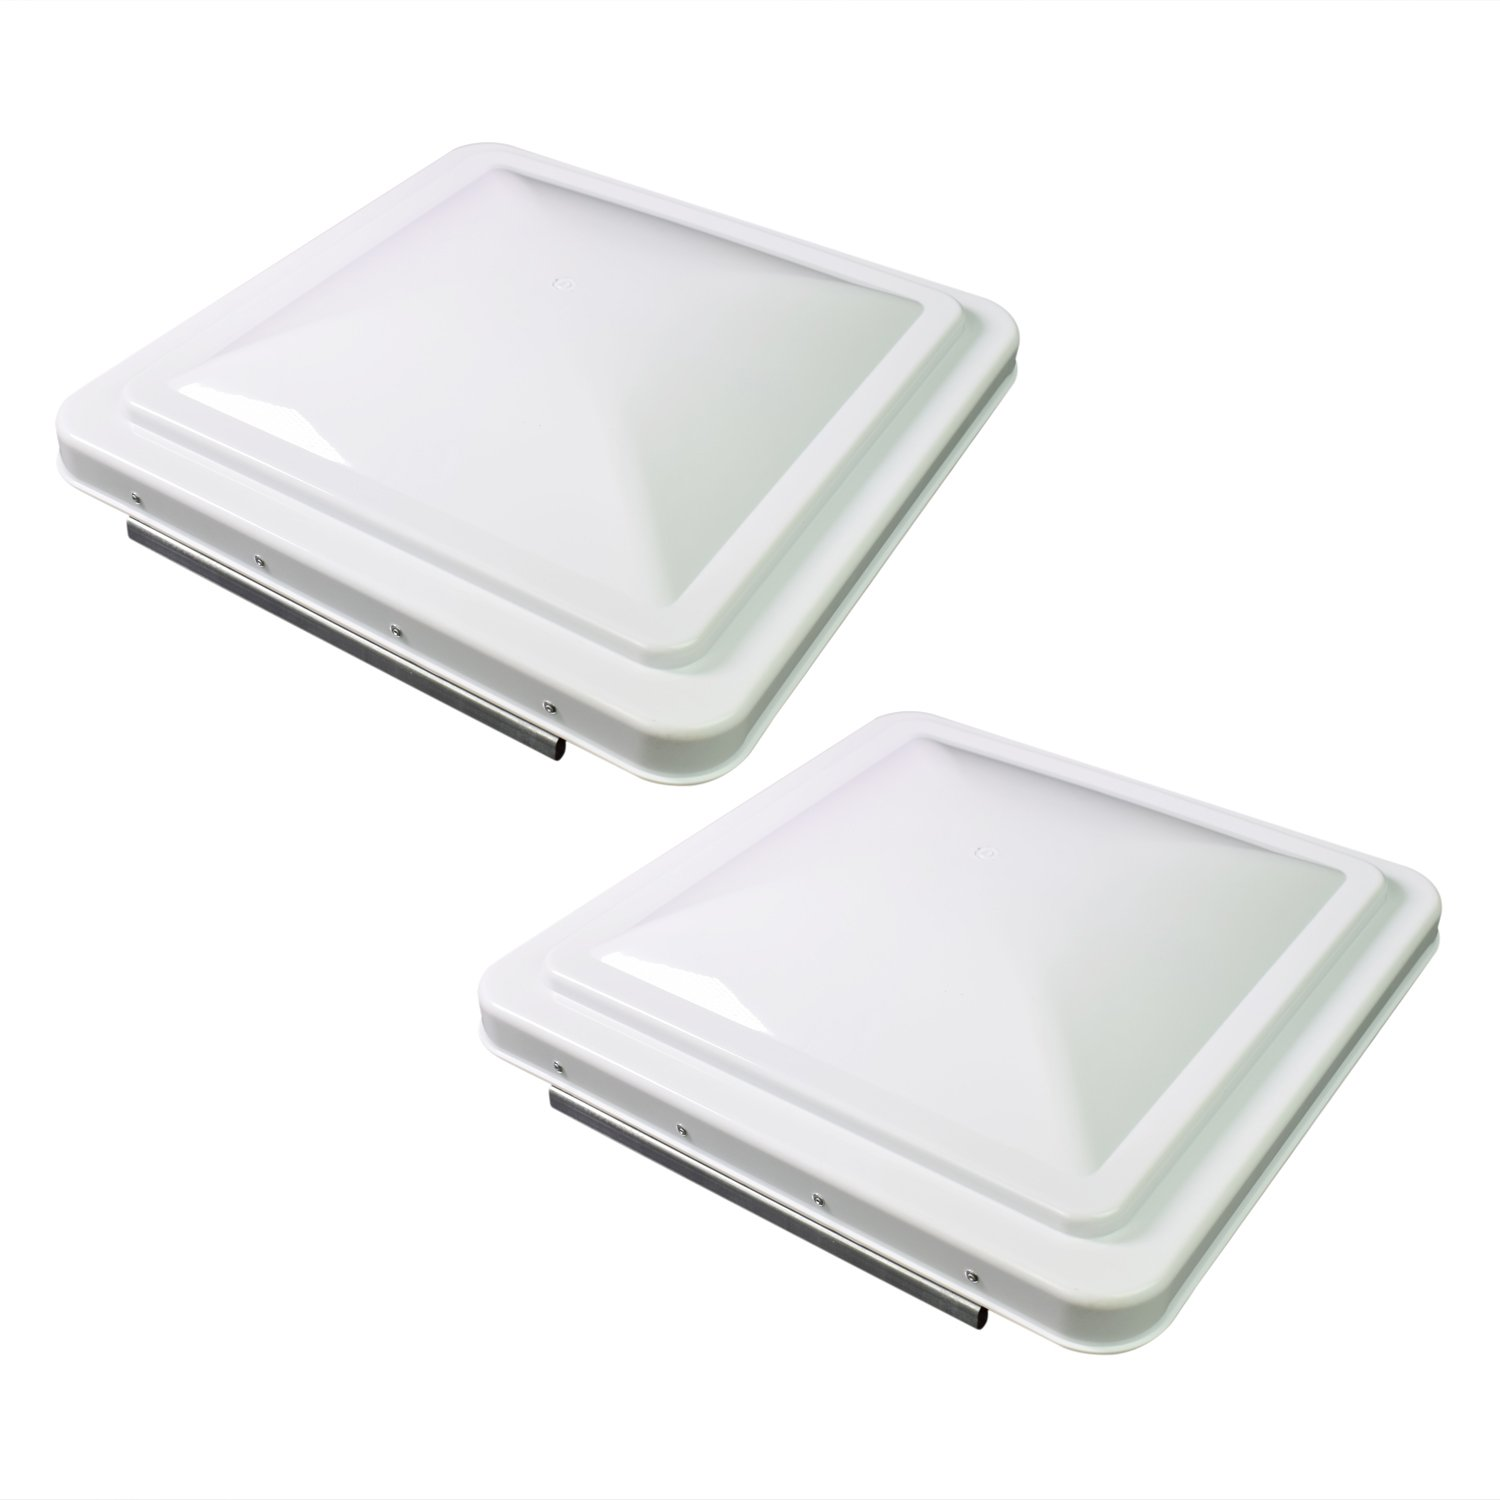 Leisure Coachworks 2 Packs 14 Inch RV Roof Vent Cover Universal Replacement Vent Lid White for Camper Trailer Motorhome (White 2-Pack) by Leisure Coachworks